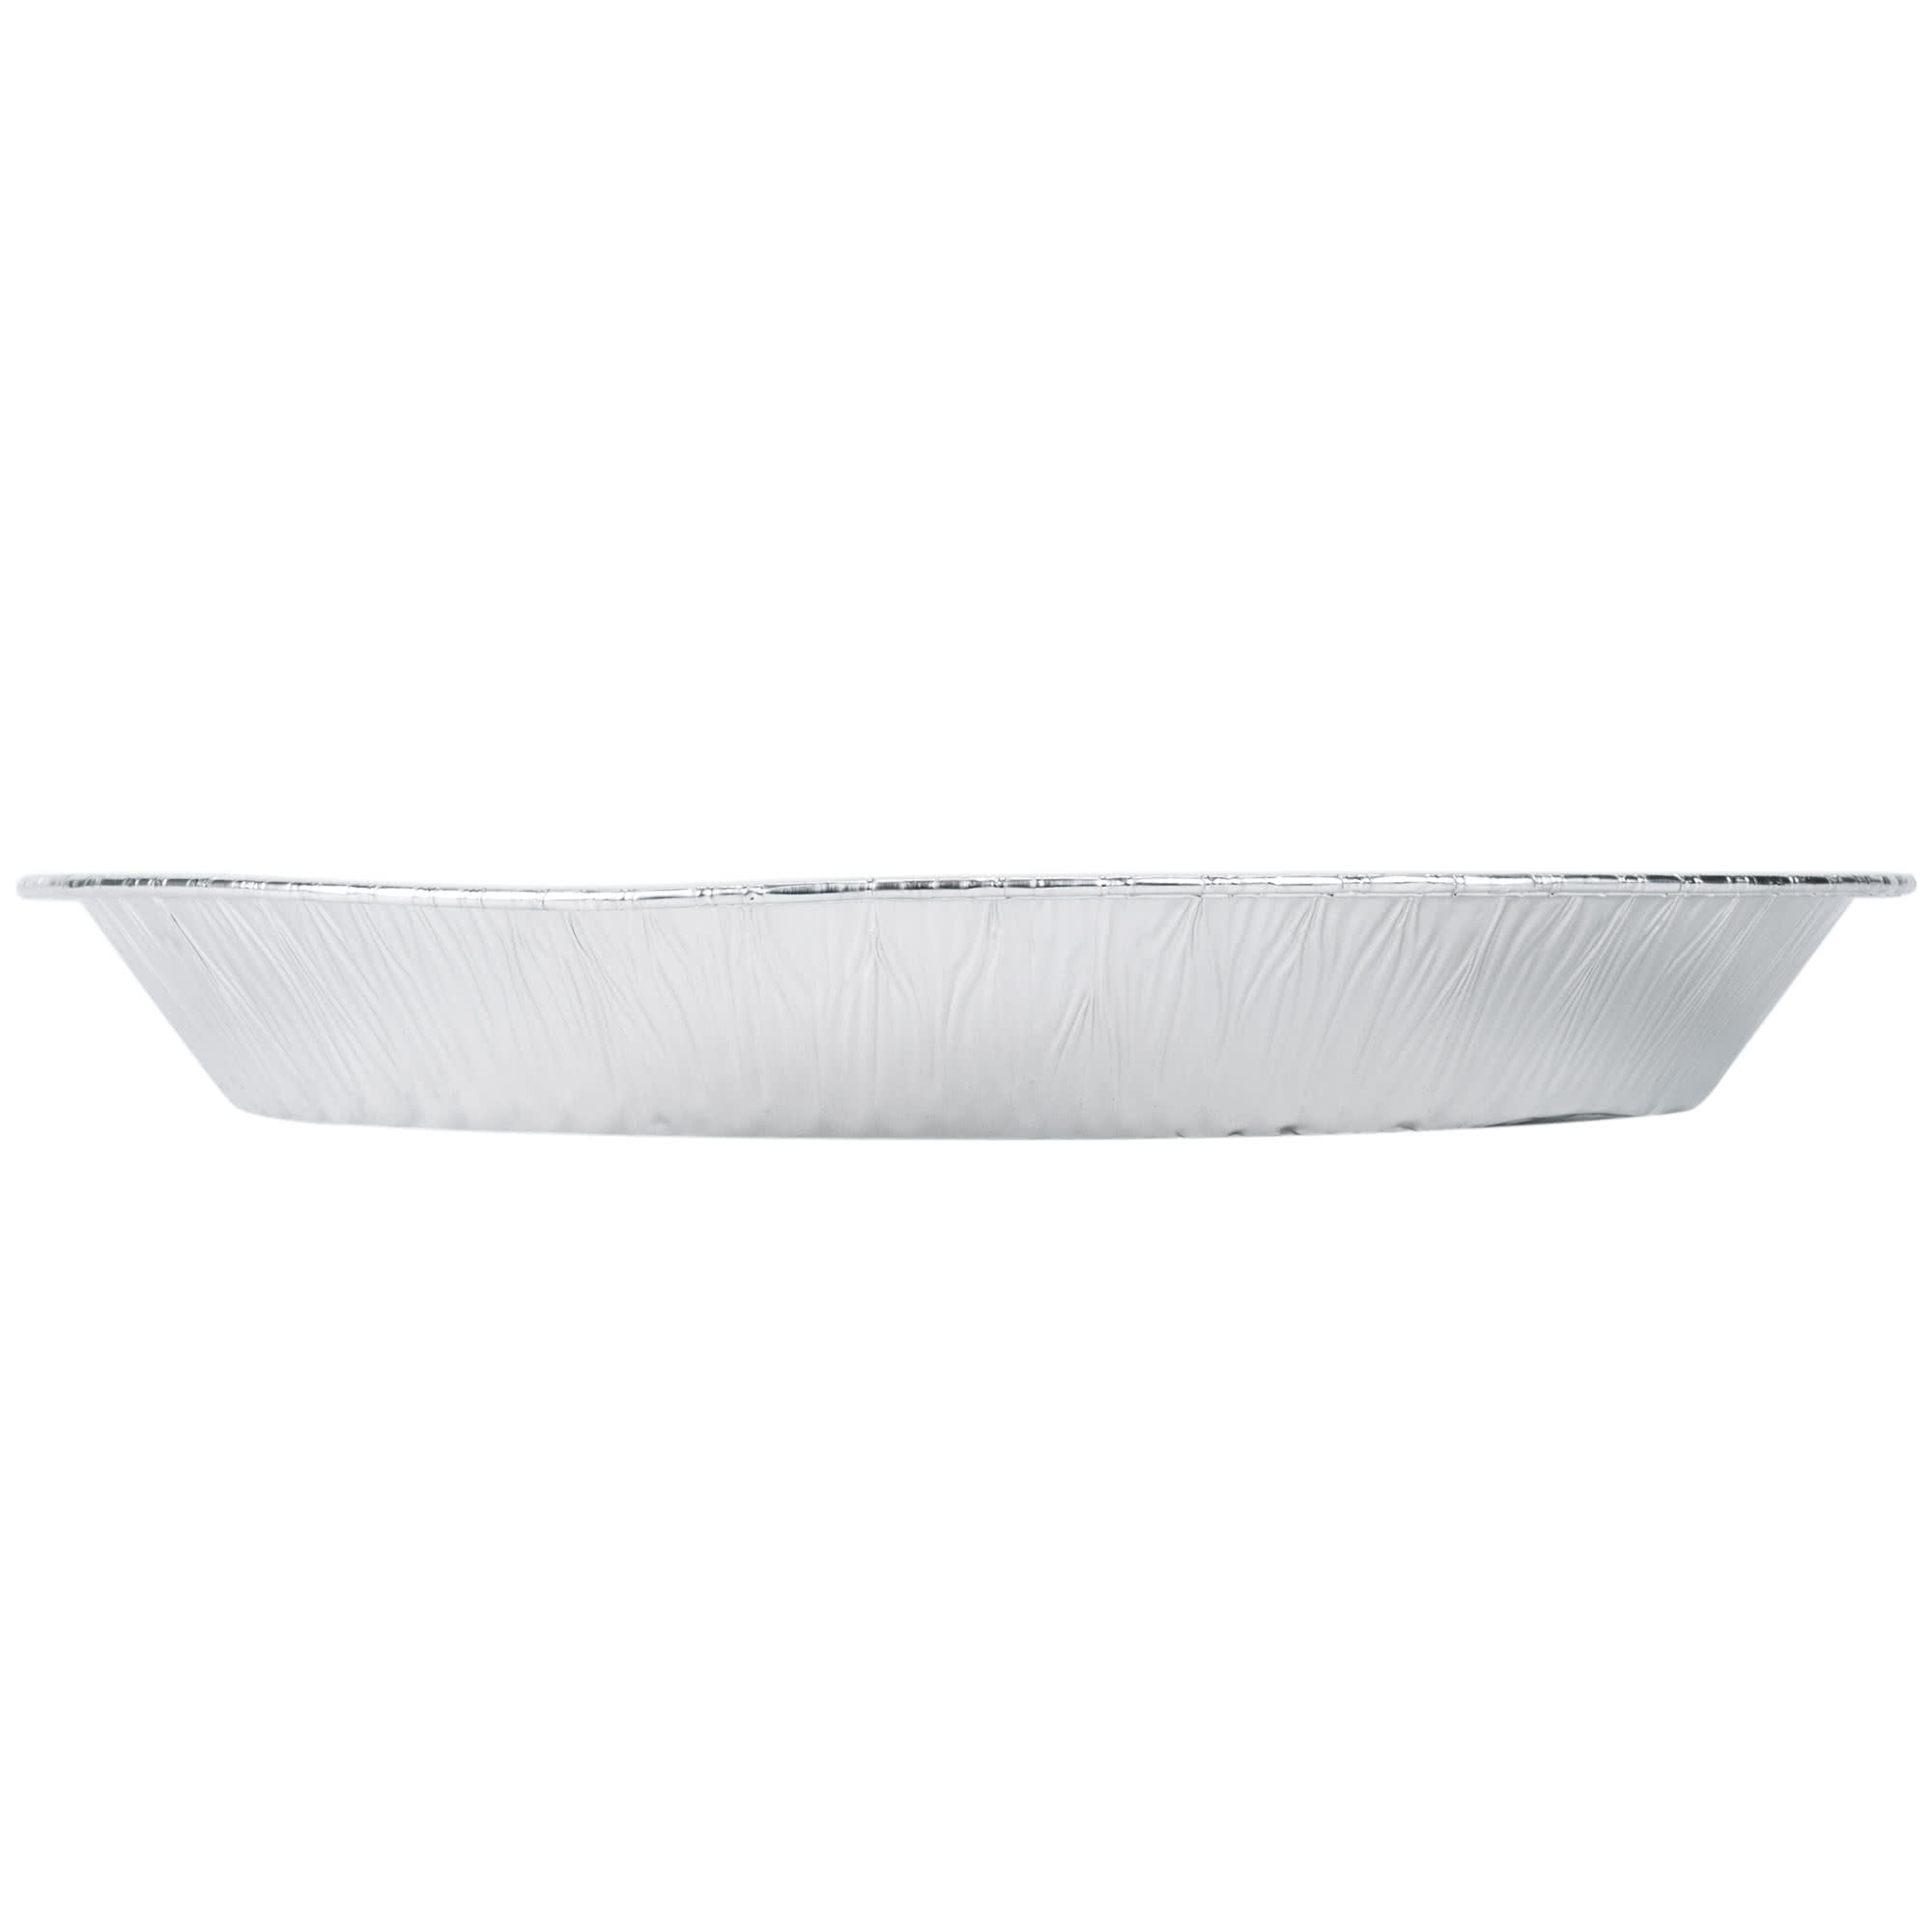 "12"" x 1 3 8"" Extra Deep Foil Pie Pan 500 Case By TableTop King by TableTop King"